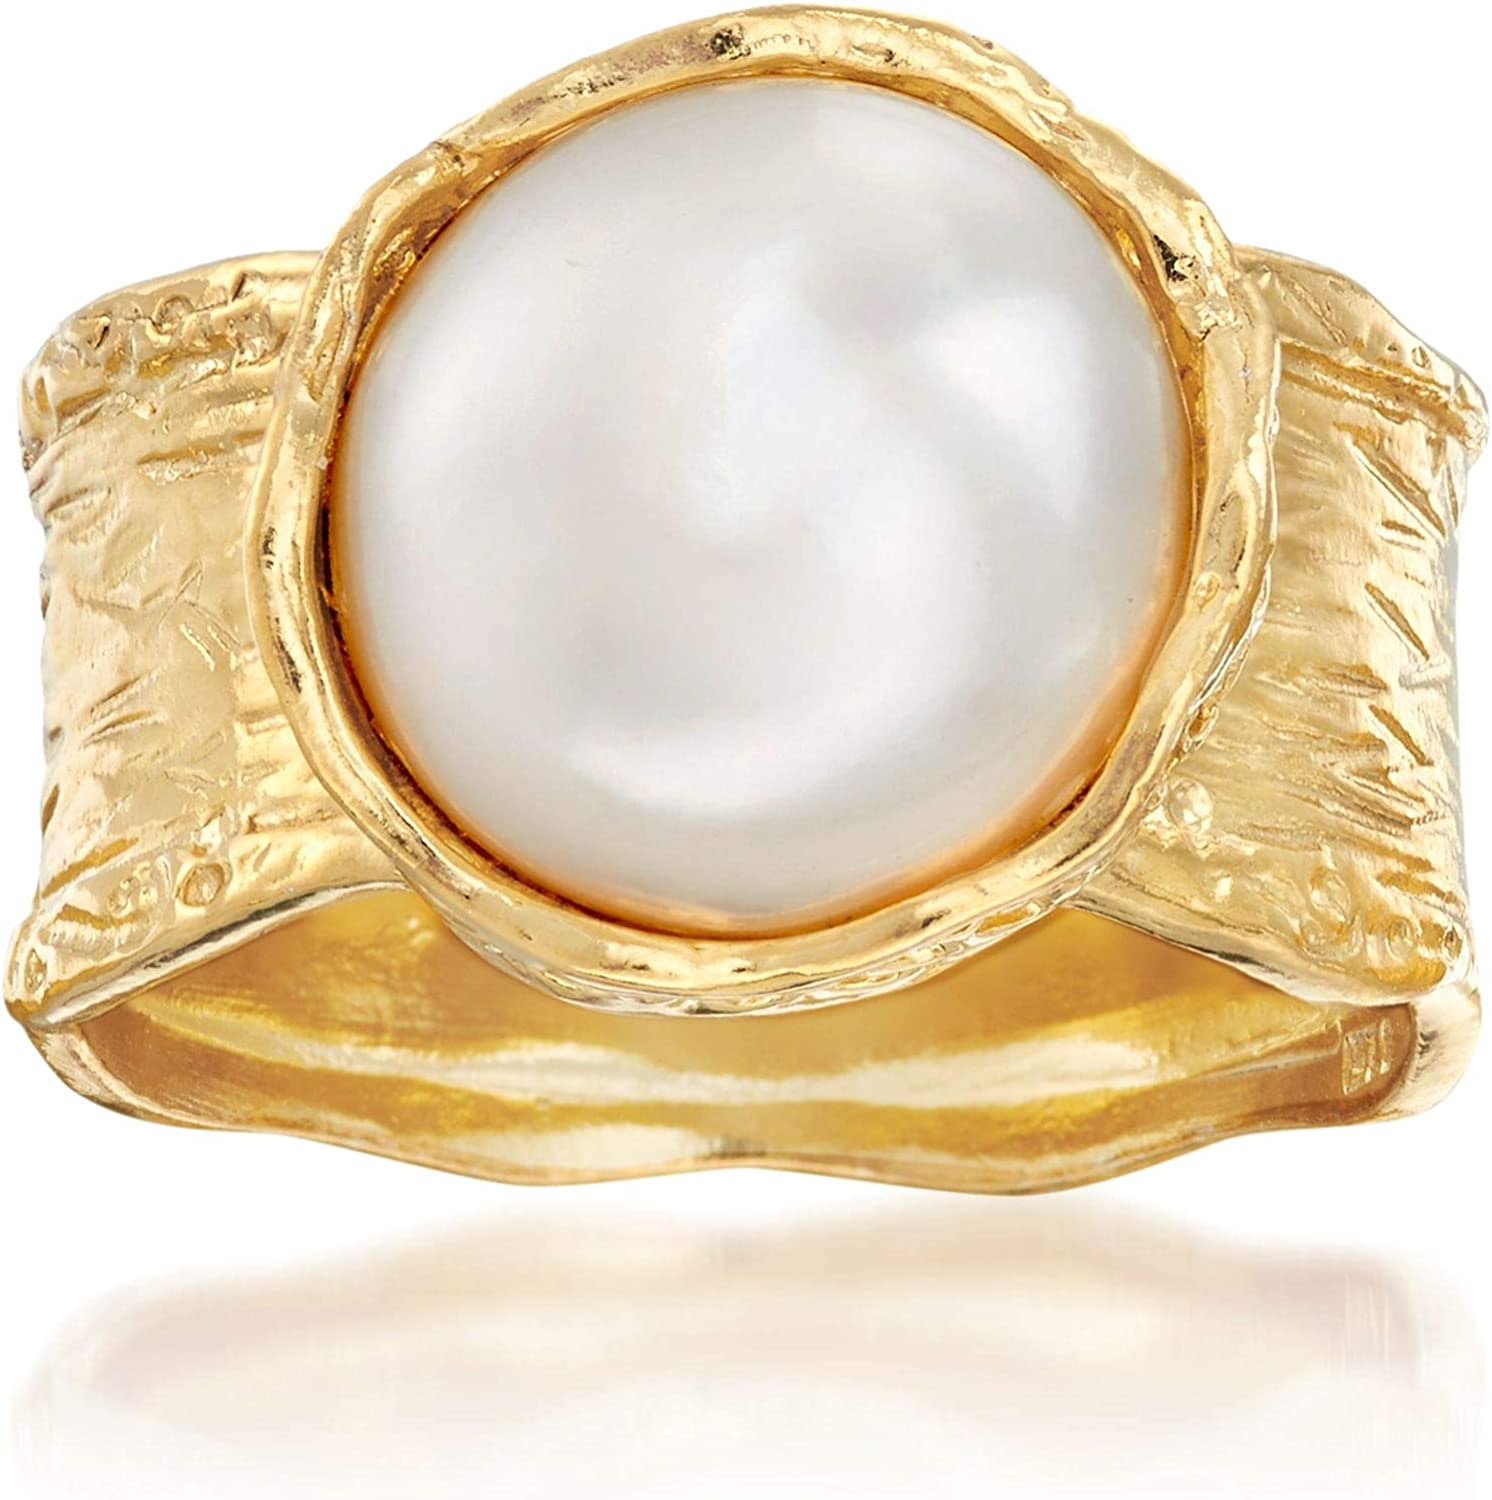 Ross-Simons 11.5-12mm Cultured Button Pearl Ring in 18kt Yellow Gold Over Sterling For Women